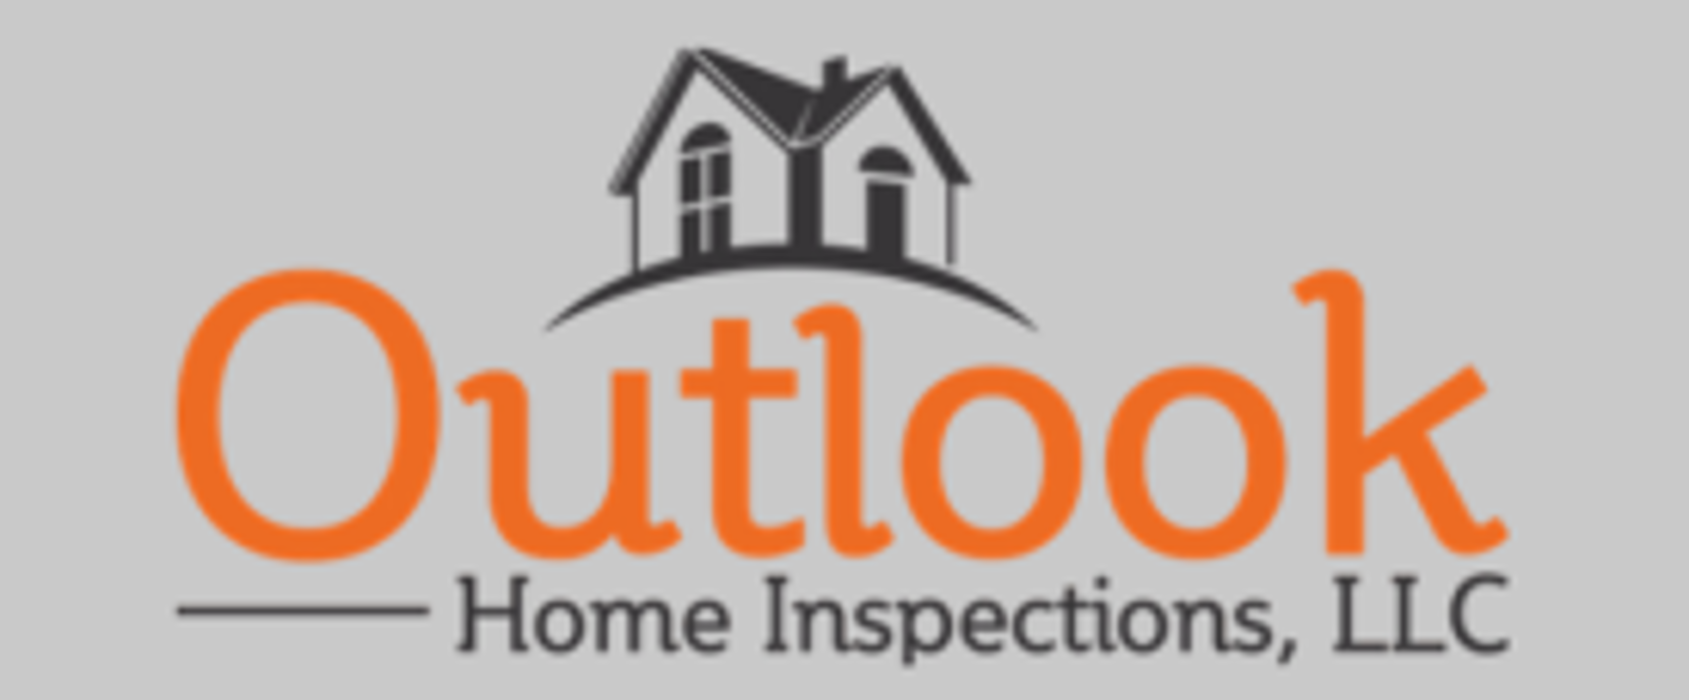 Outlook Home Inspections, LLC - Shelby, NC